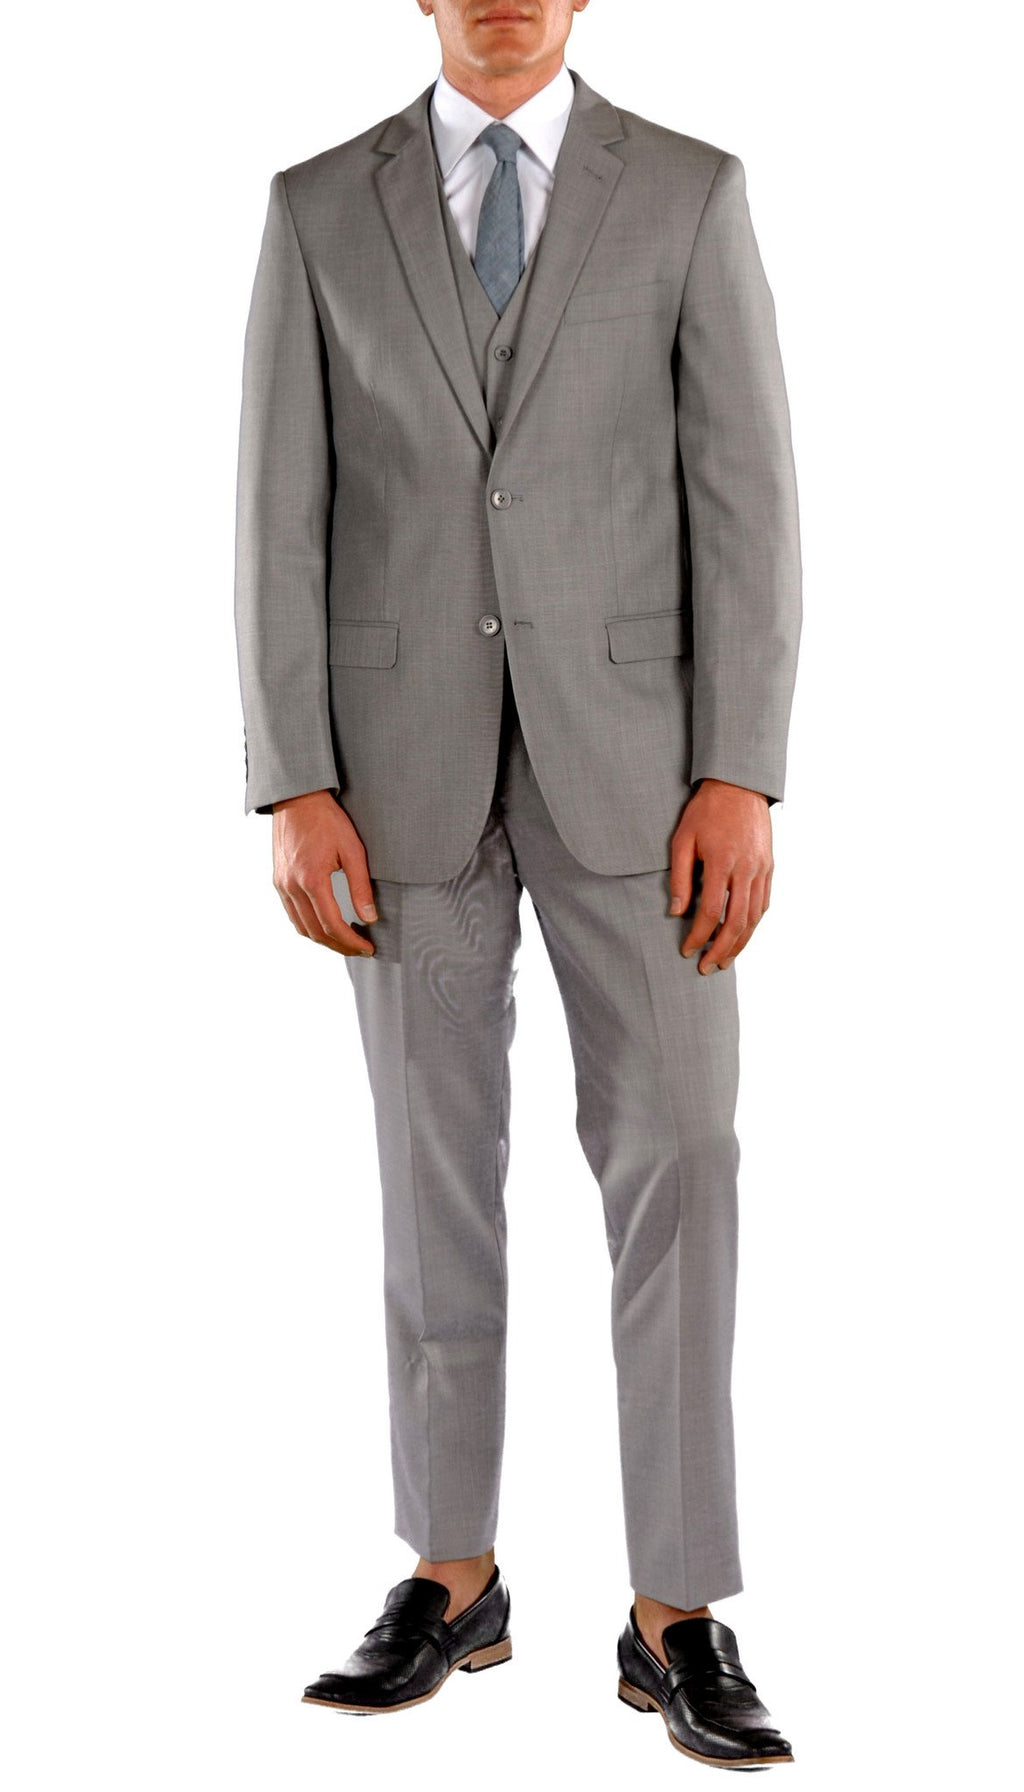 Light Grey Slim Fit Suit - 3PC - JAX - Giorgio's Menswear